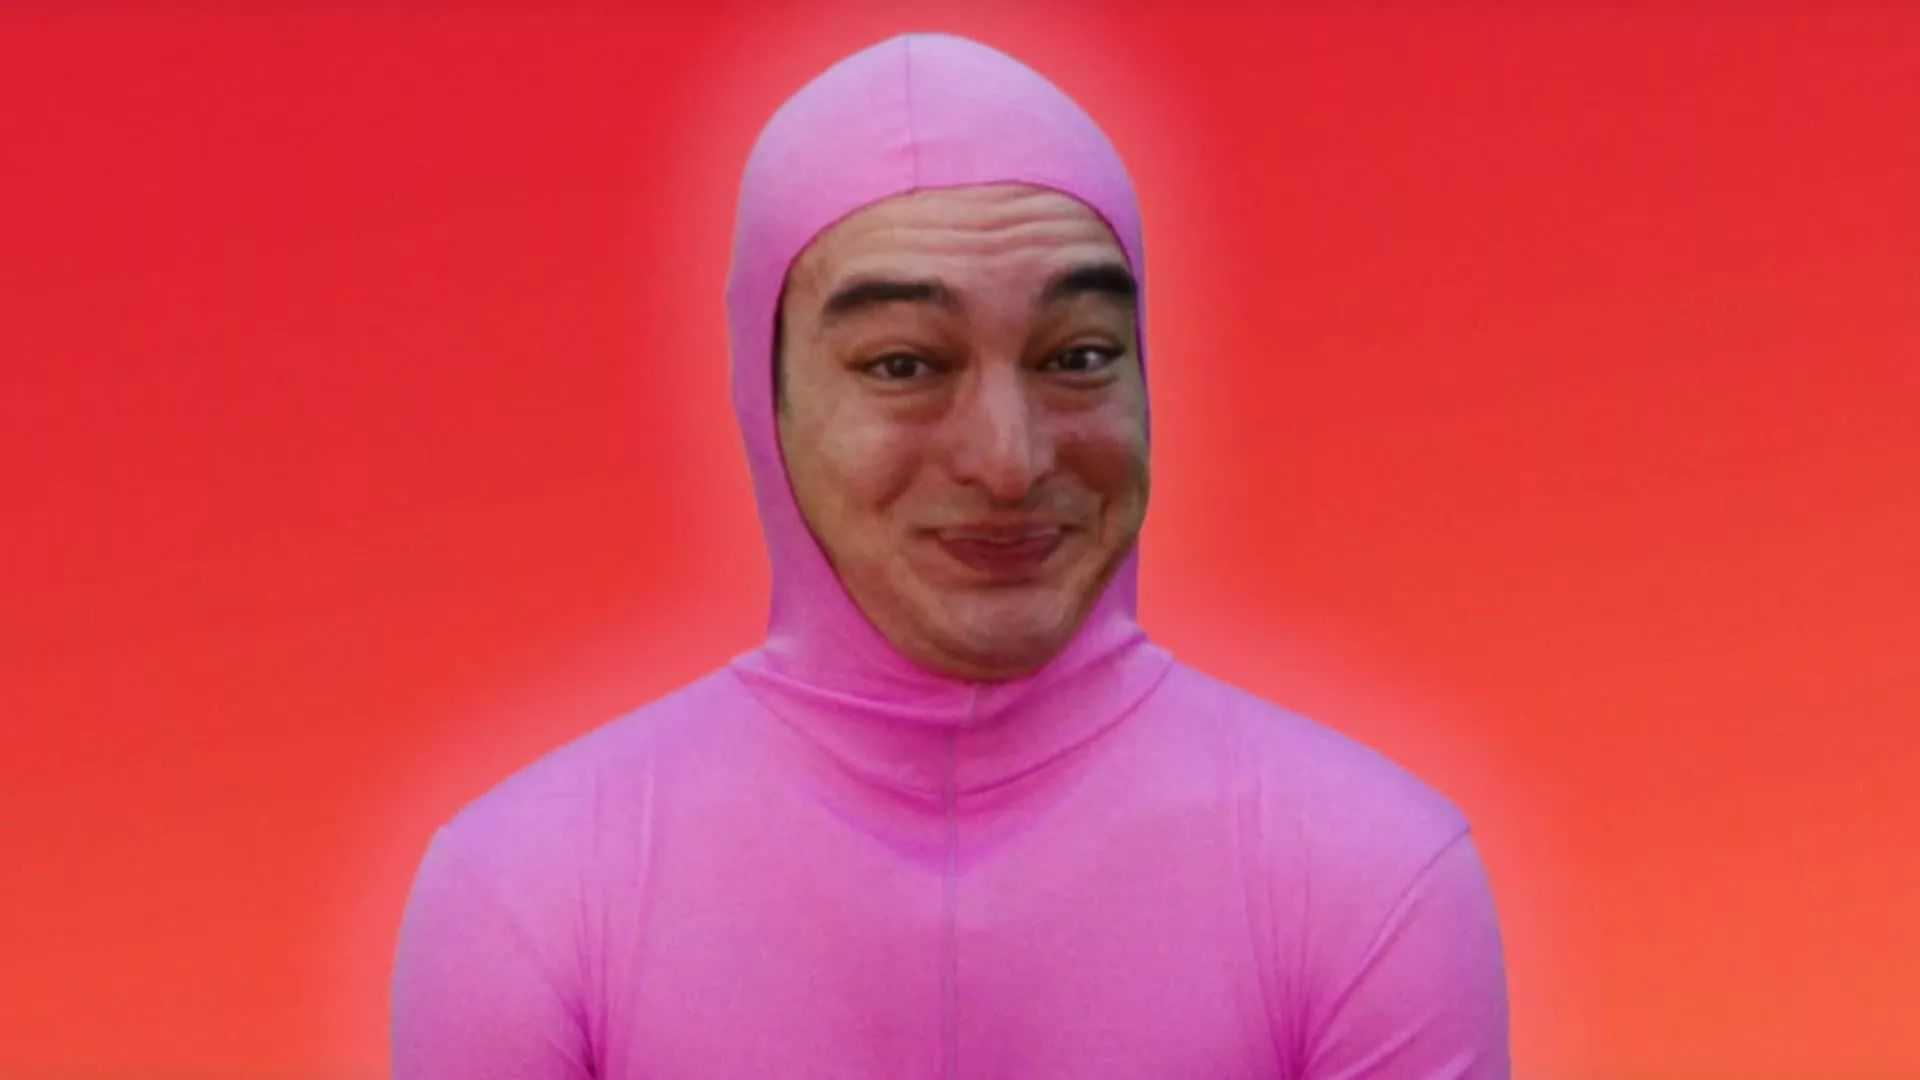 Pink Guy vertical wallpaper hd